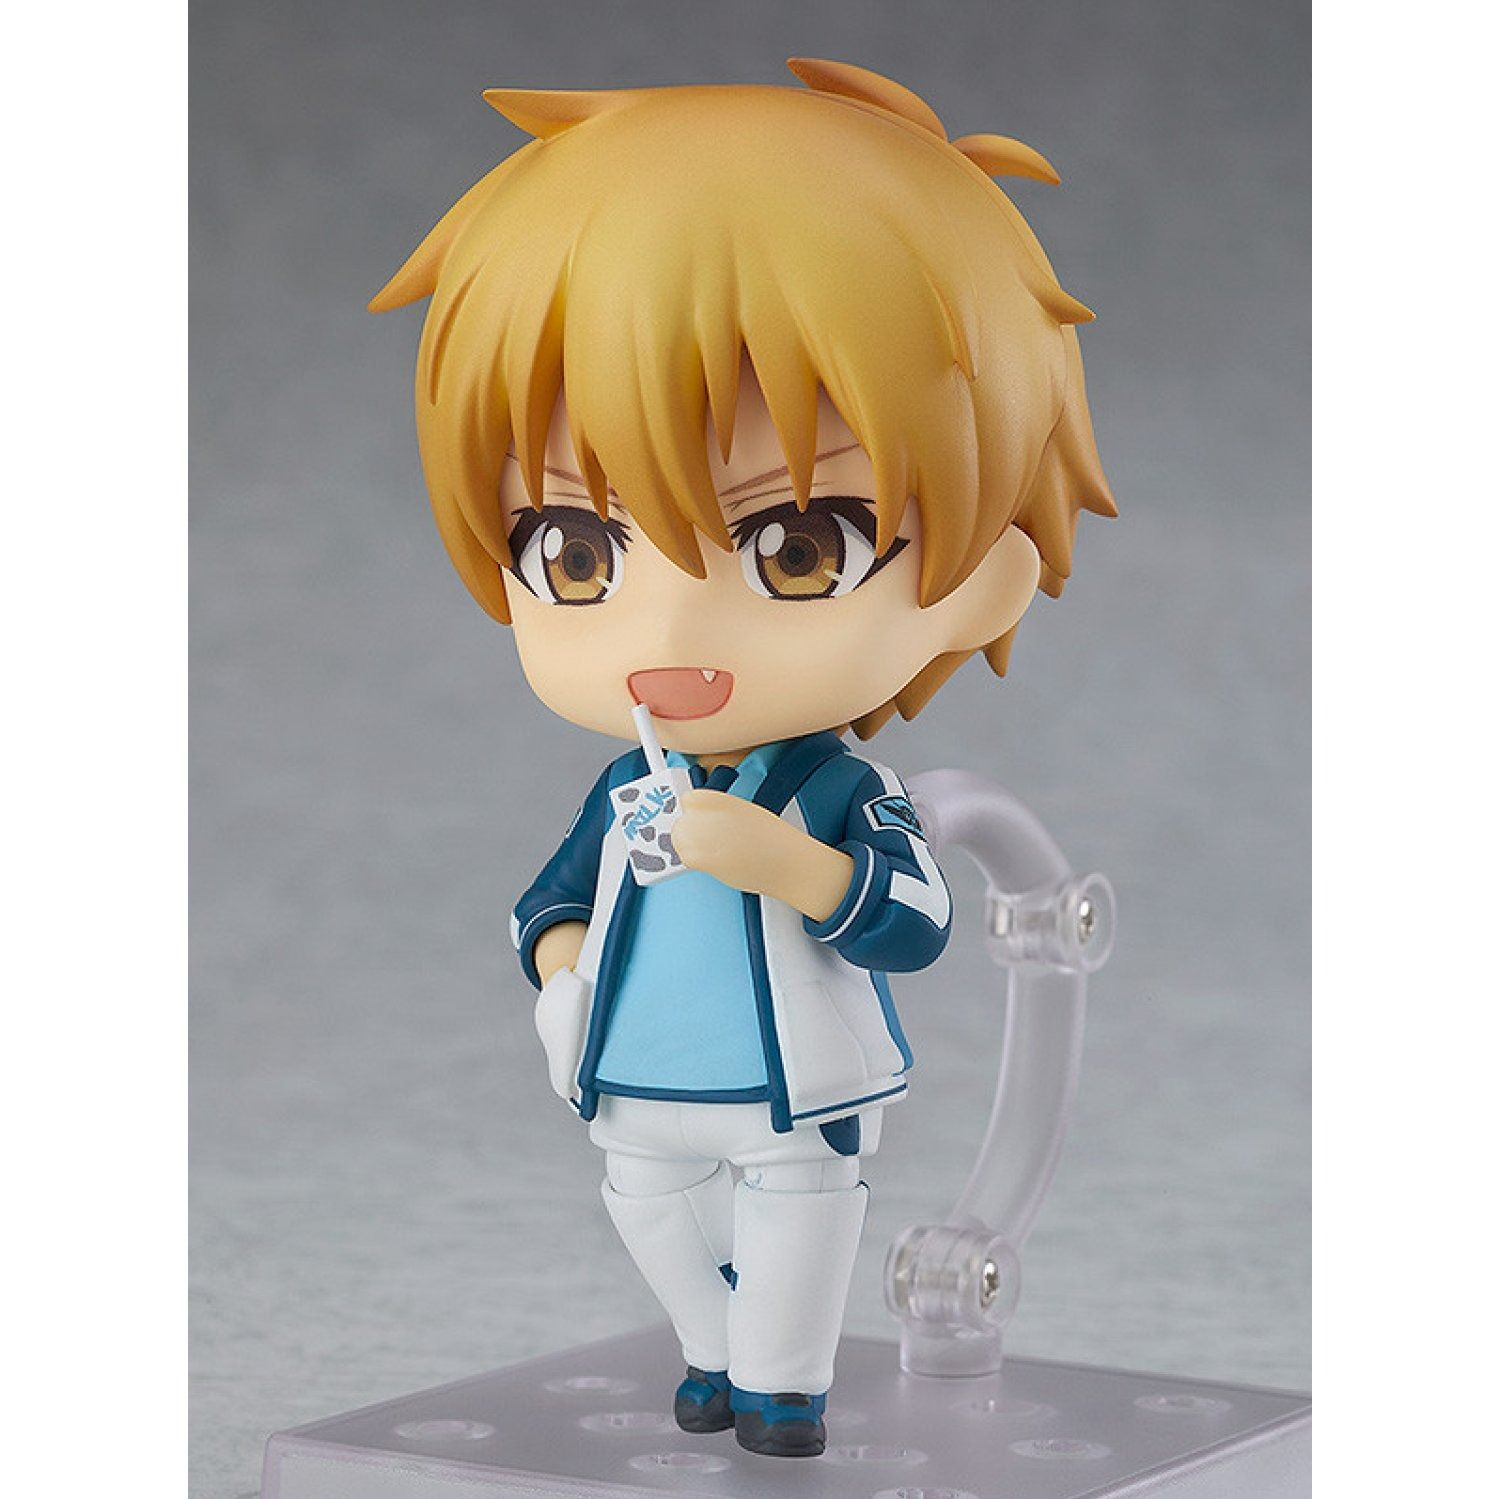 Check our full Nendoroid board! From China's popular